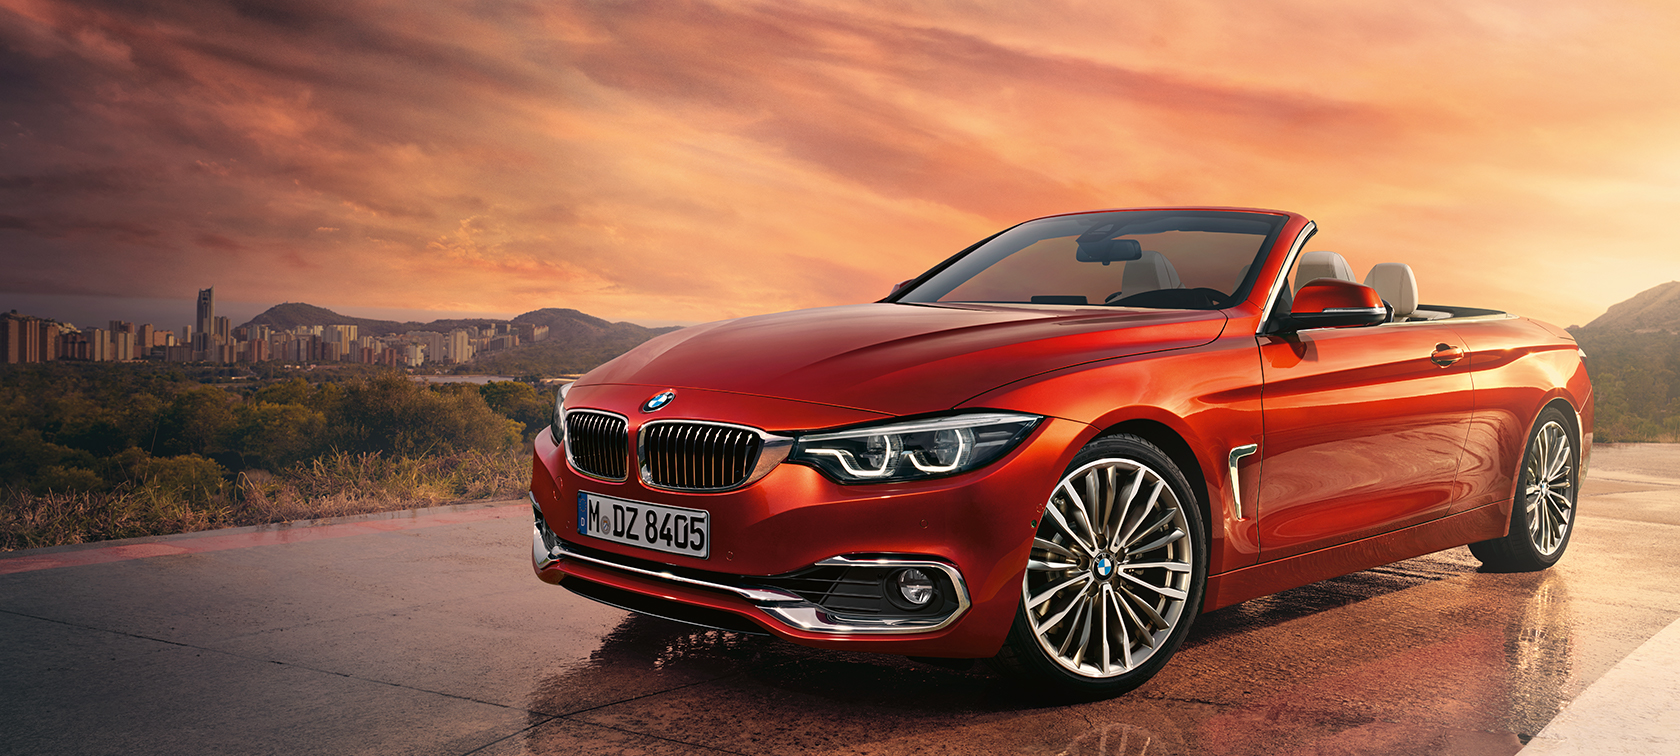 BMW 4-Series Convertible red: frontside view